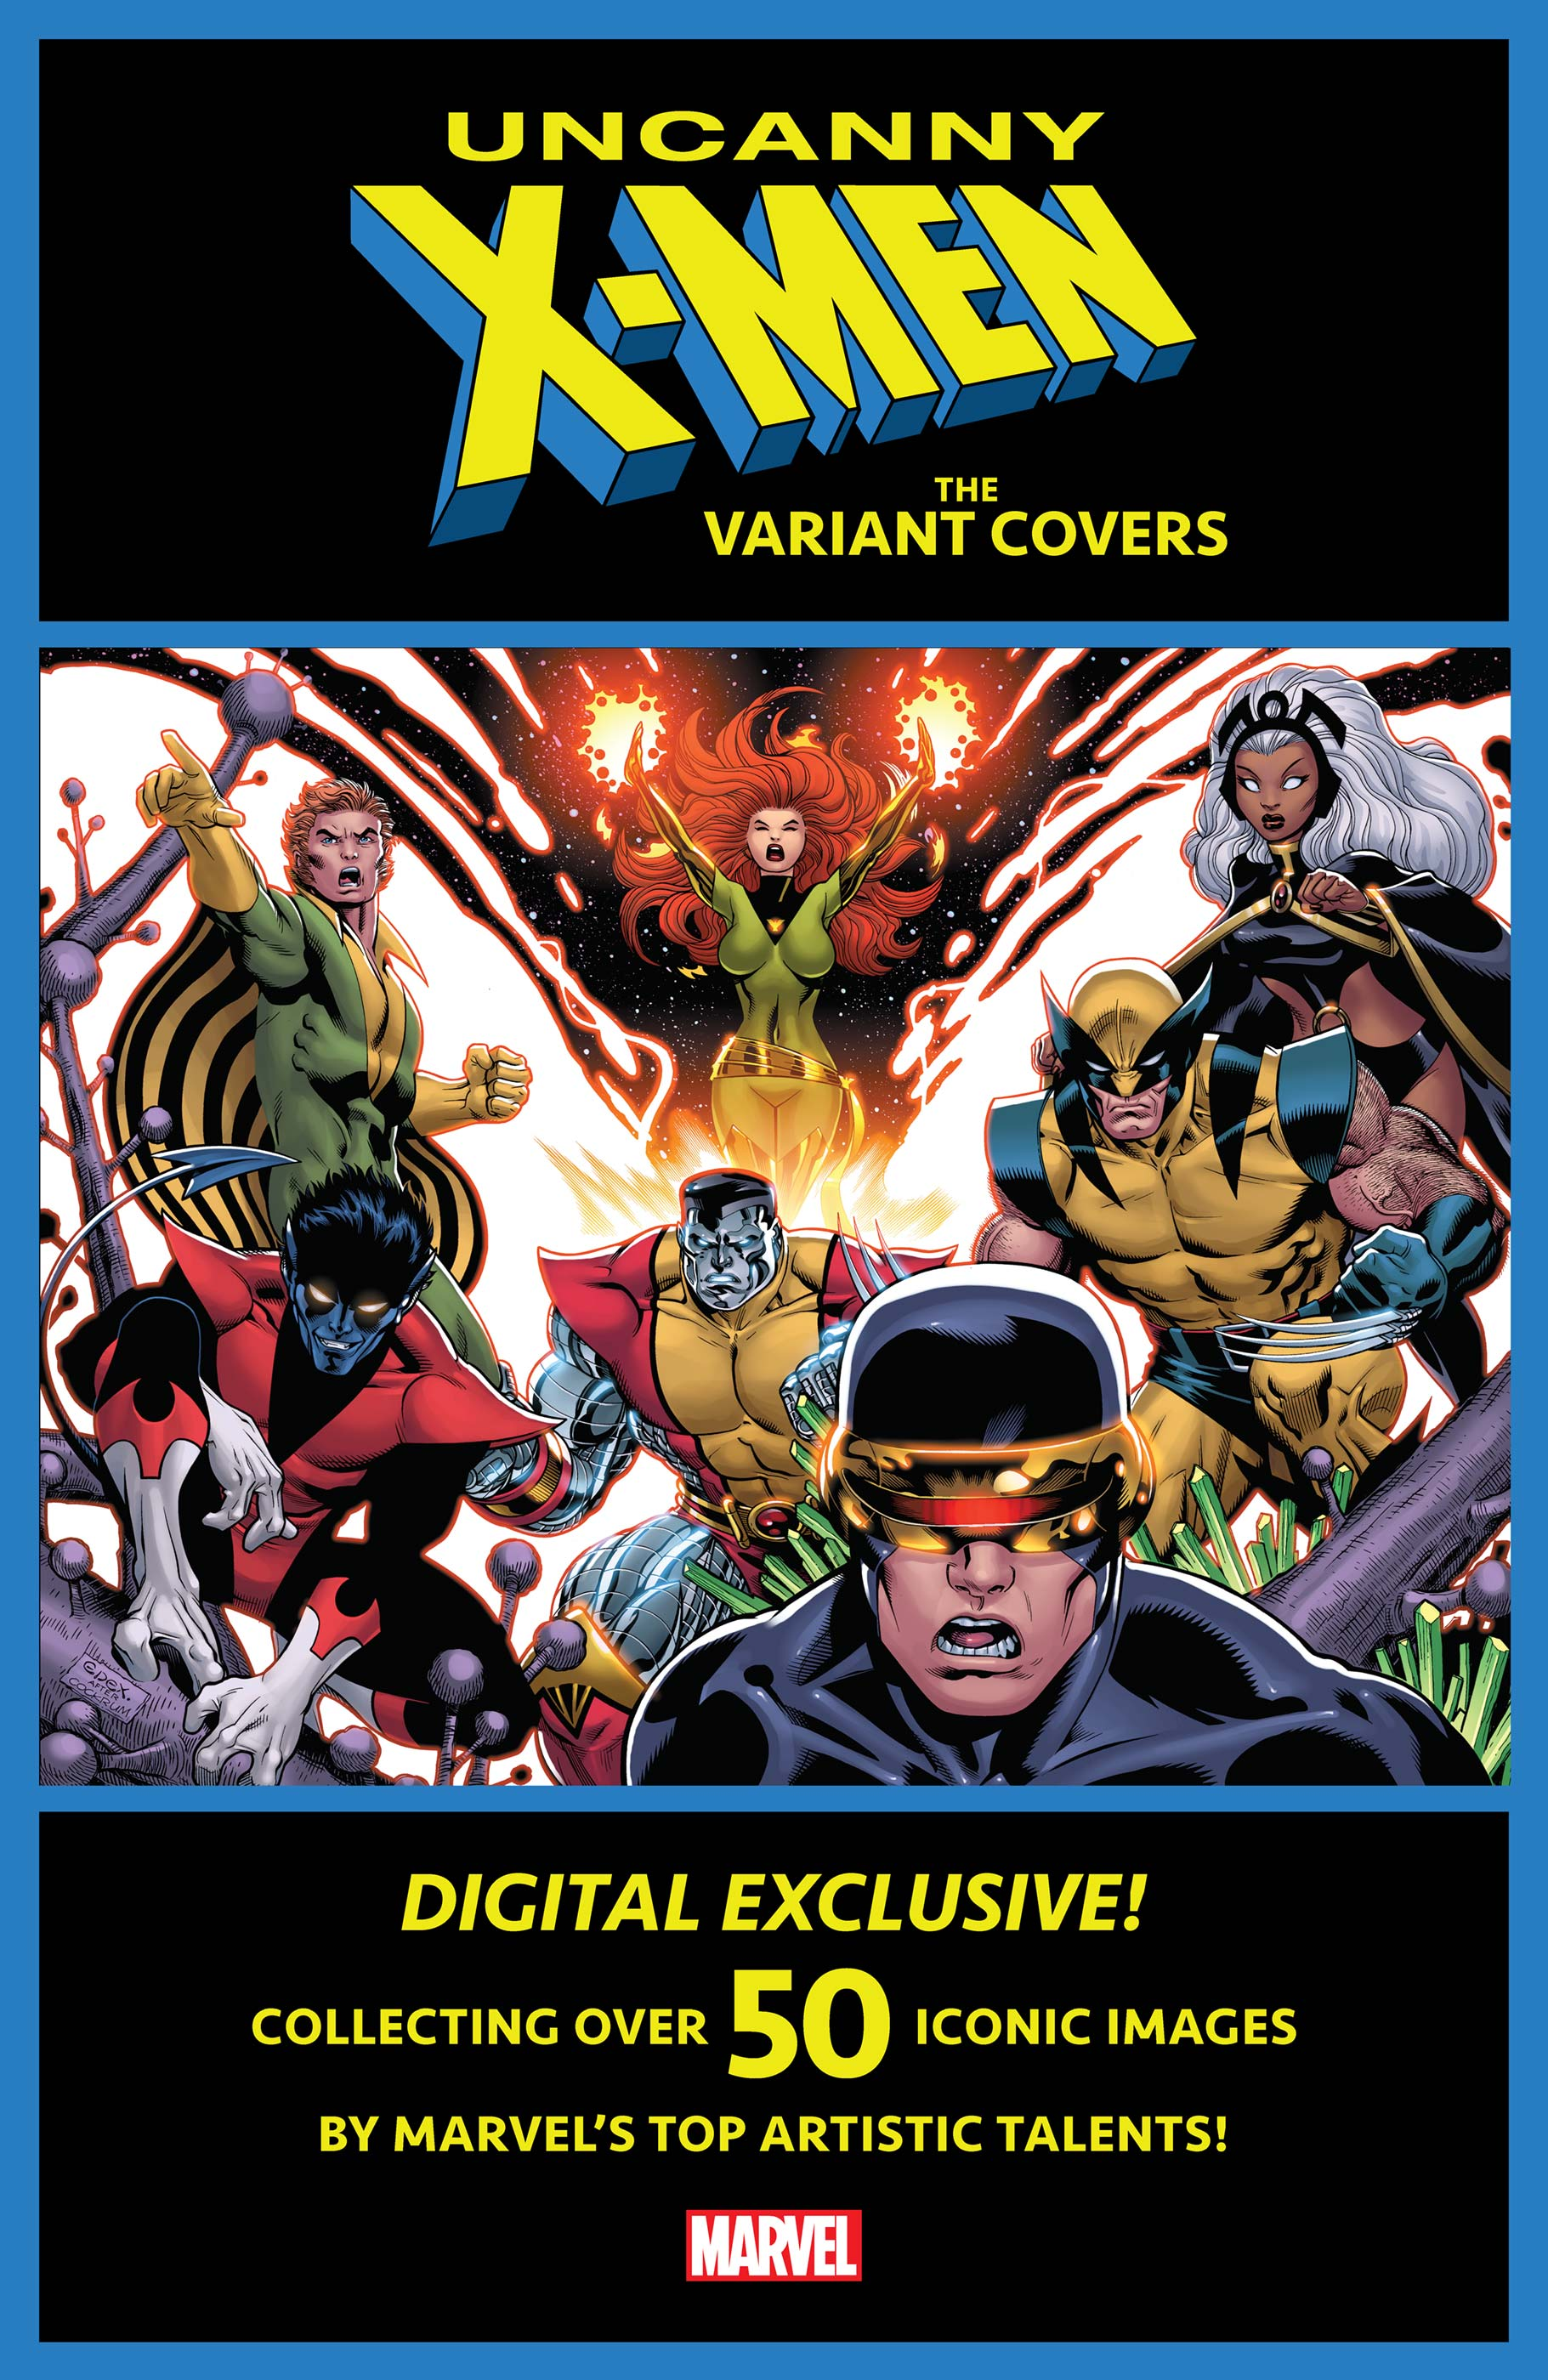 Uncanny X-Men: The Variant Covers (2020) #1